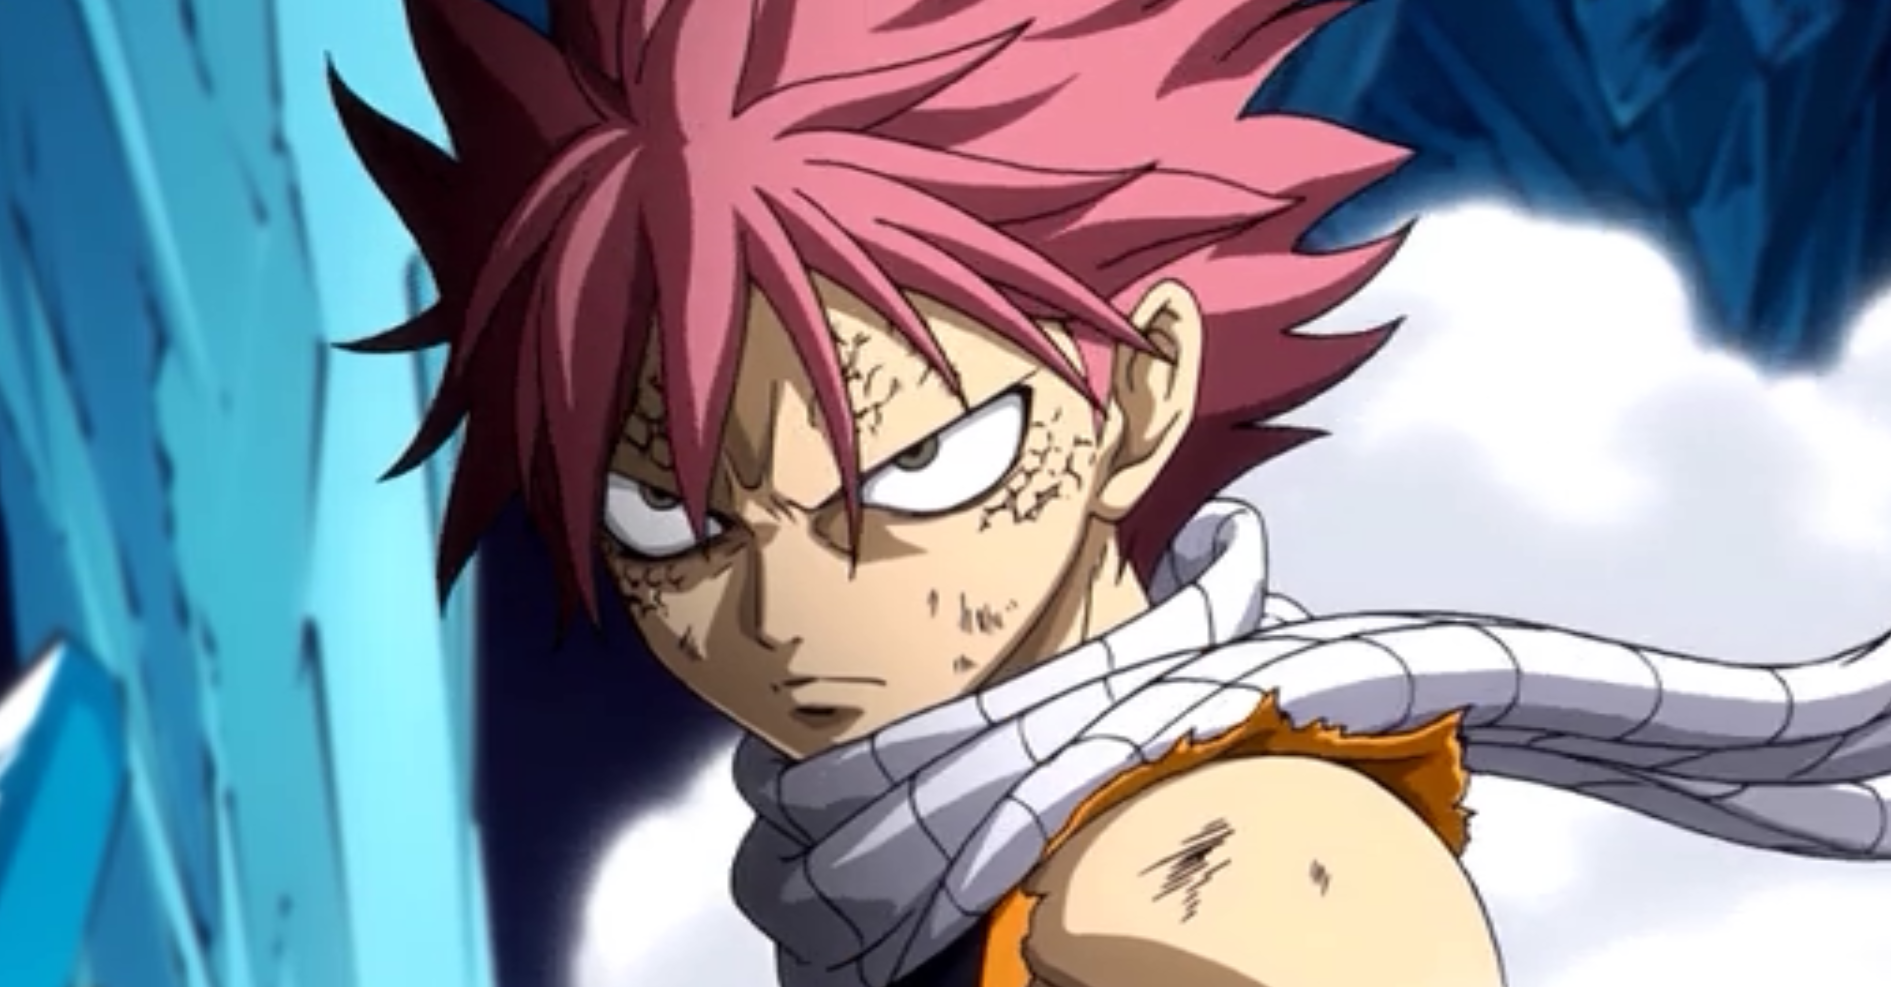 True form of the Dragon Slayer - Natsu | Fairy Tail ...